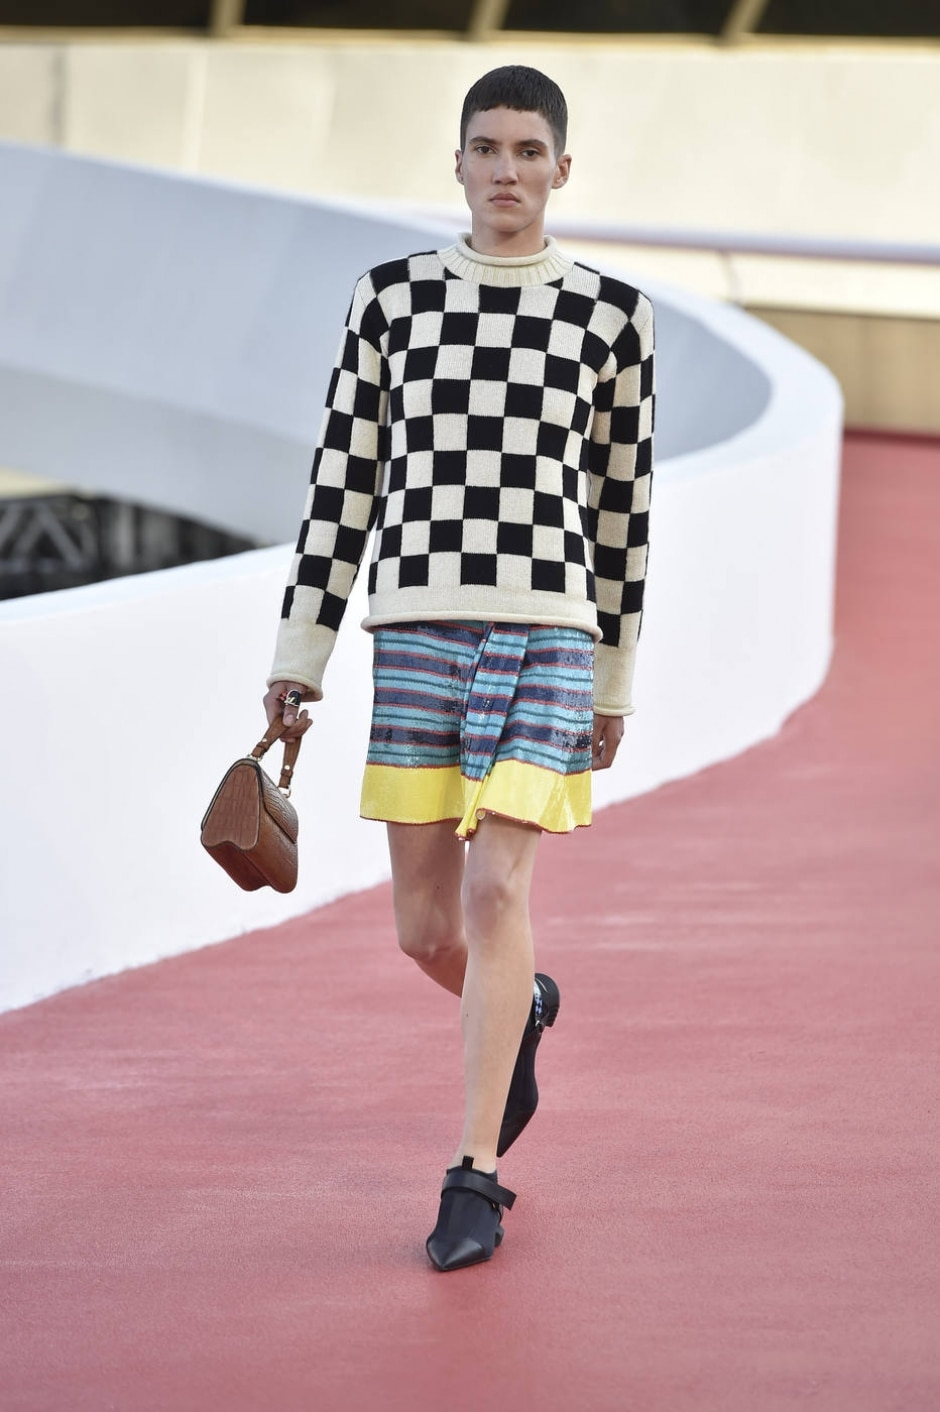 LOUIS VUITTON Women Collection Fall-Winter 2016/2017 © Louis Vuitton Malletier – All rights reserved